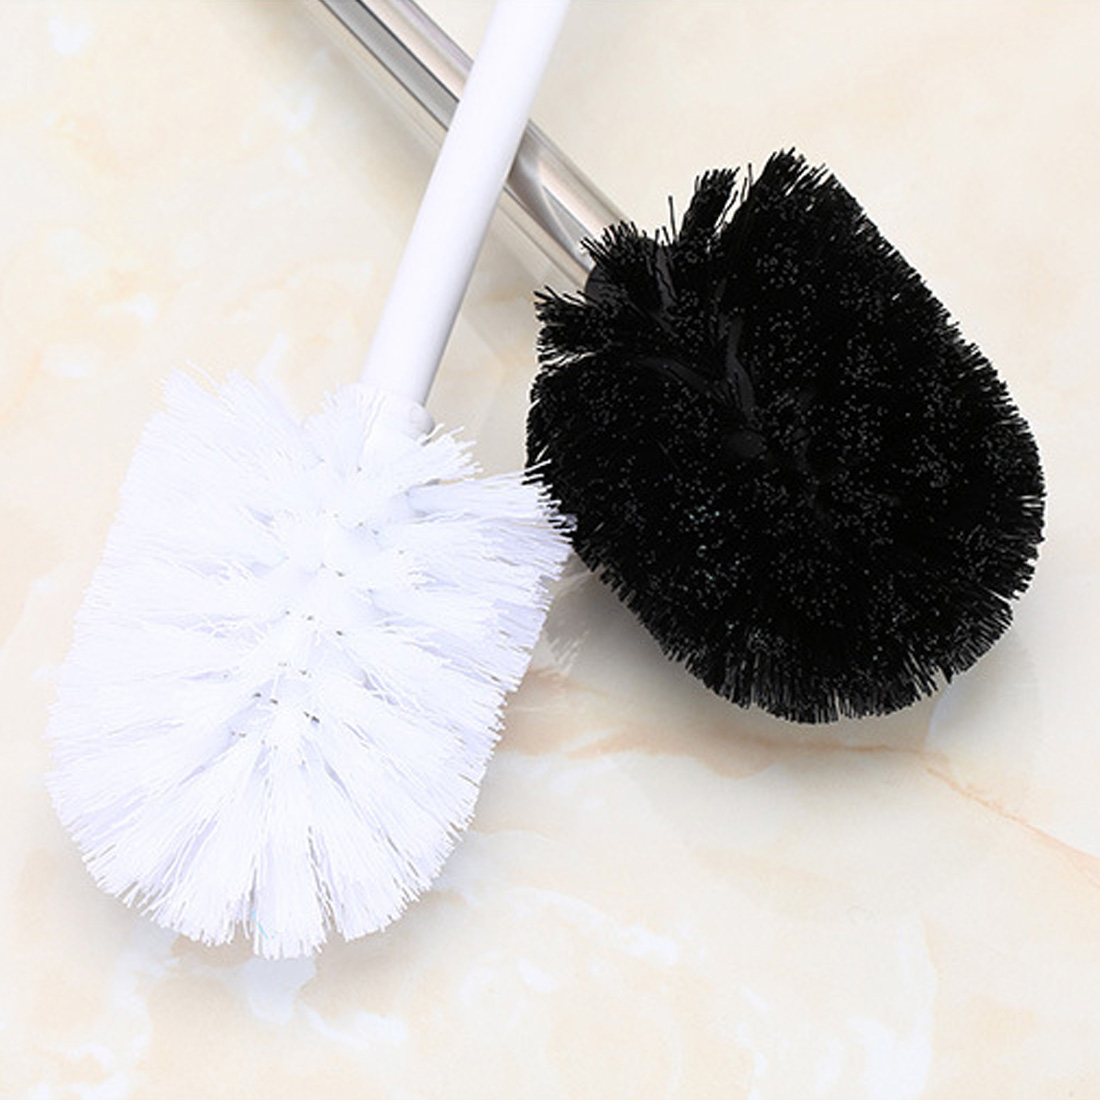 White Black Cleaning Tool Window Cleaner Hot Cleaning